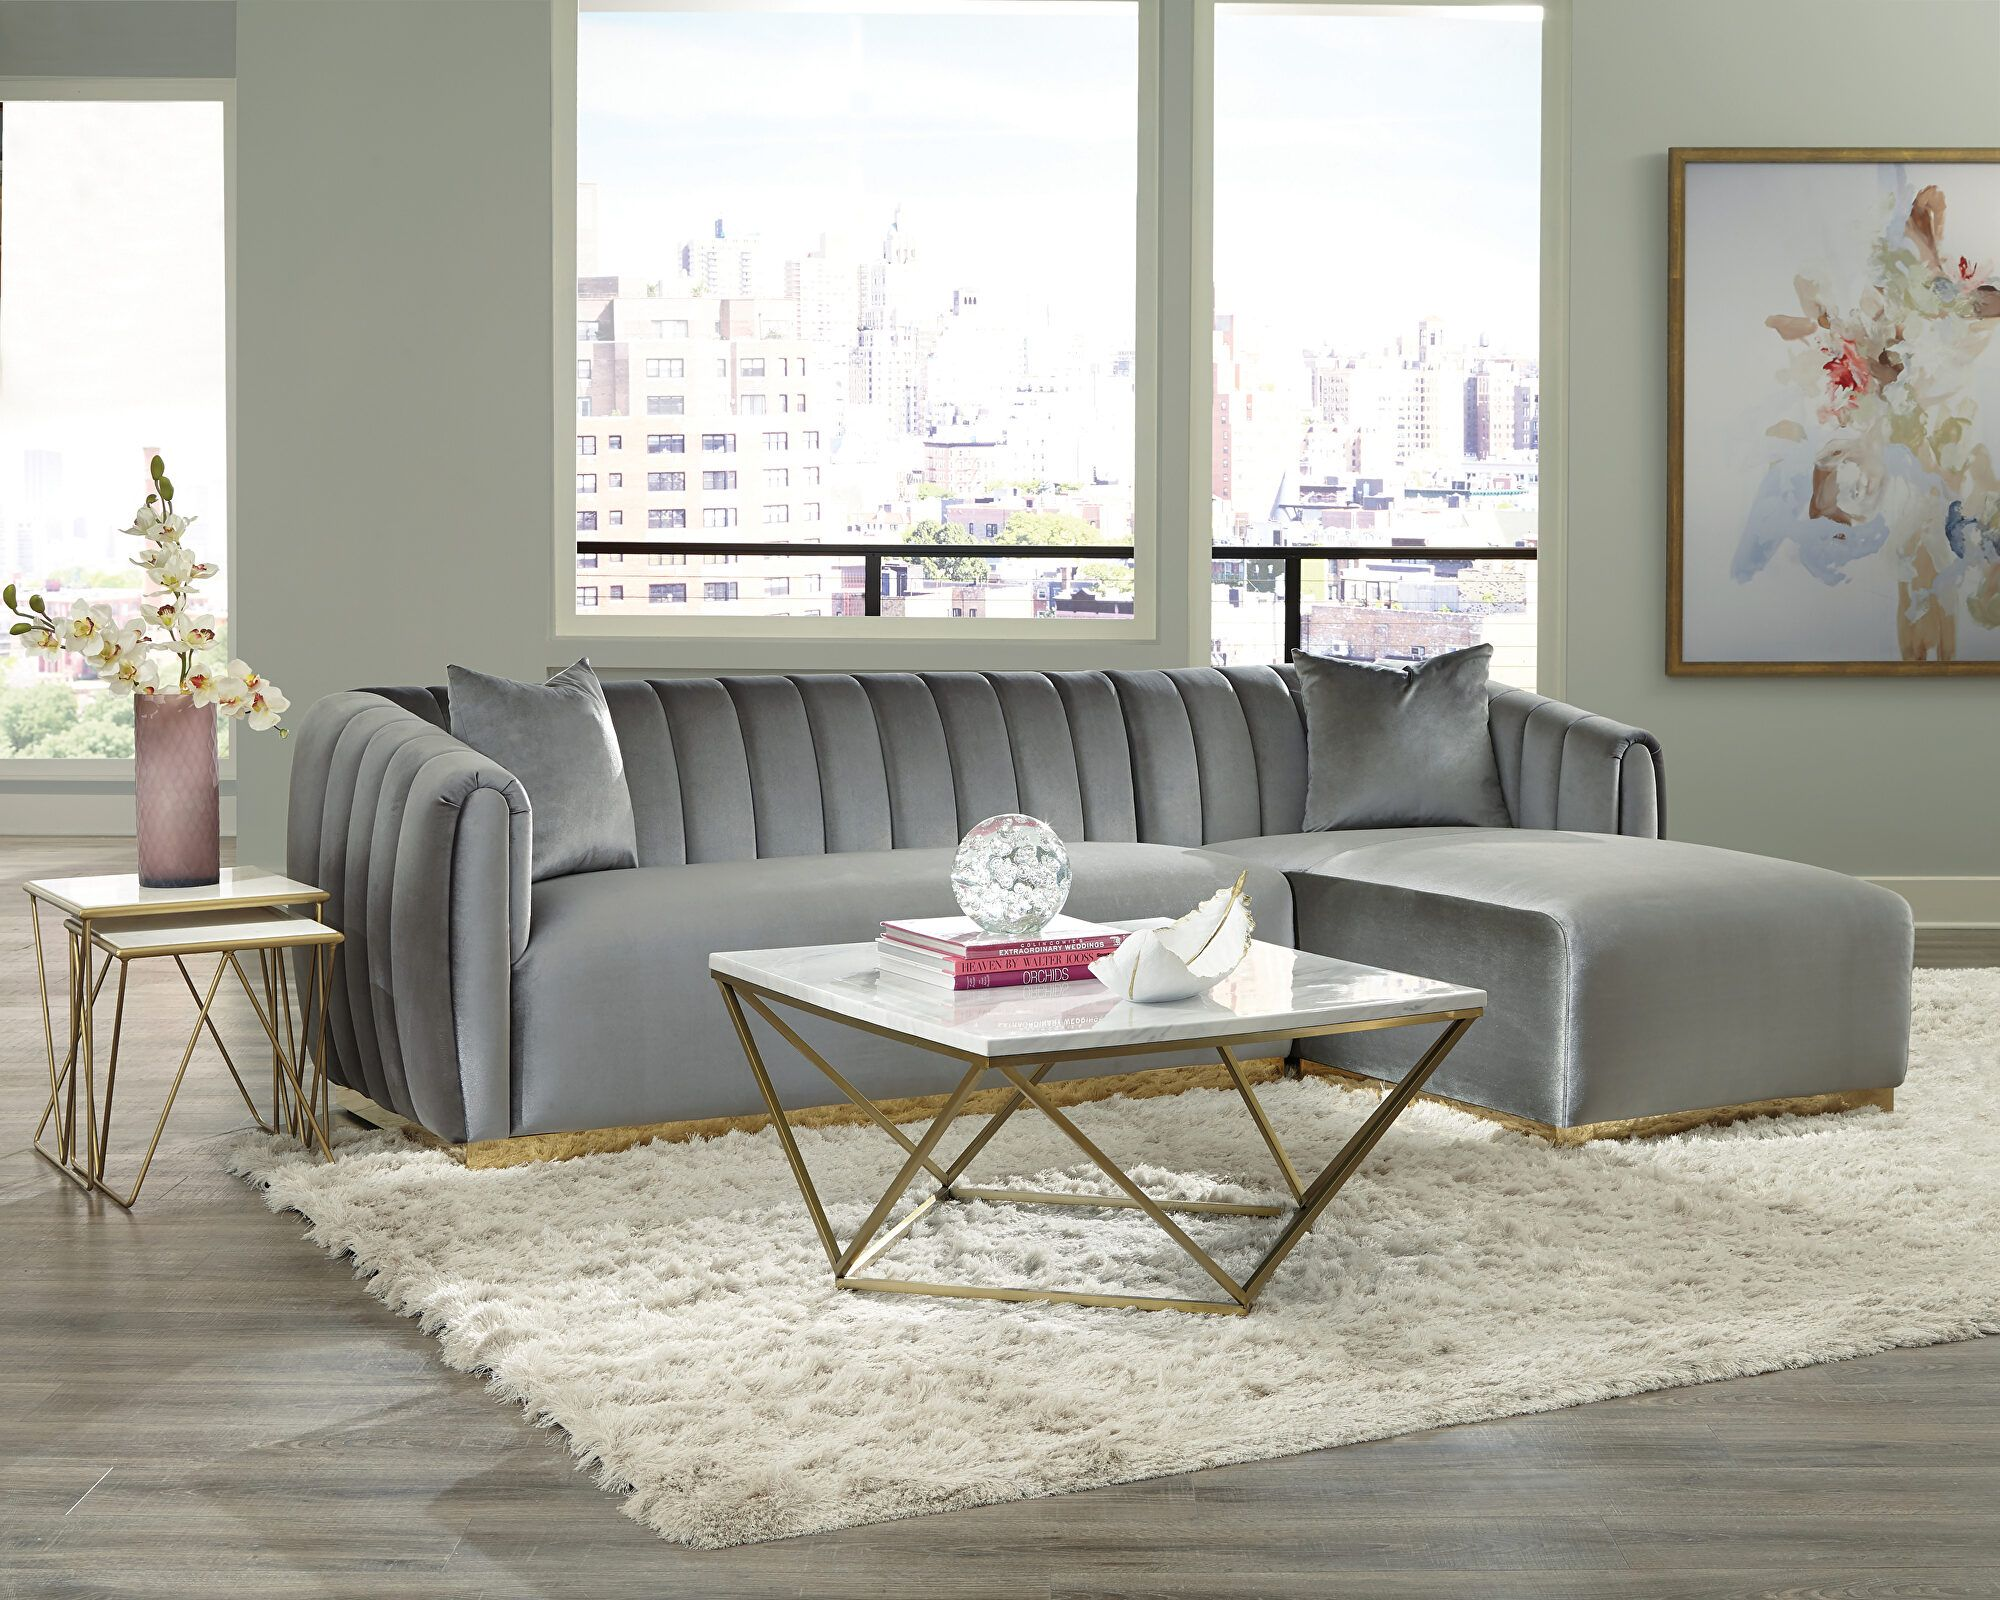 Grisby Sectional Sofa 509490 Coaster Furniture Sectional Sofas In 2021 Sectional Sofa Fabric Sectional Sofas Modern Sectional